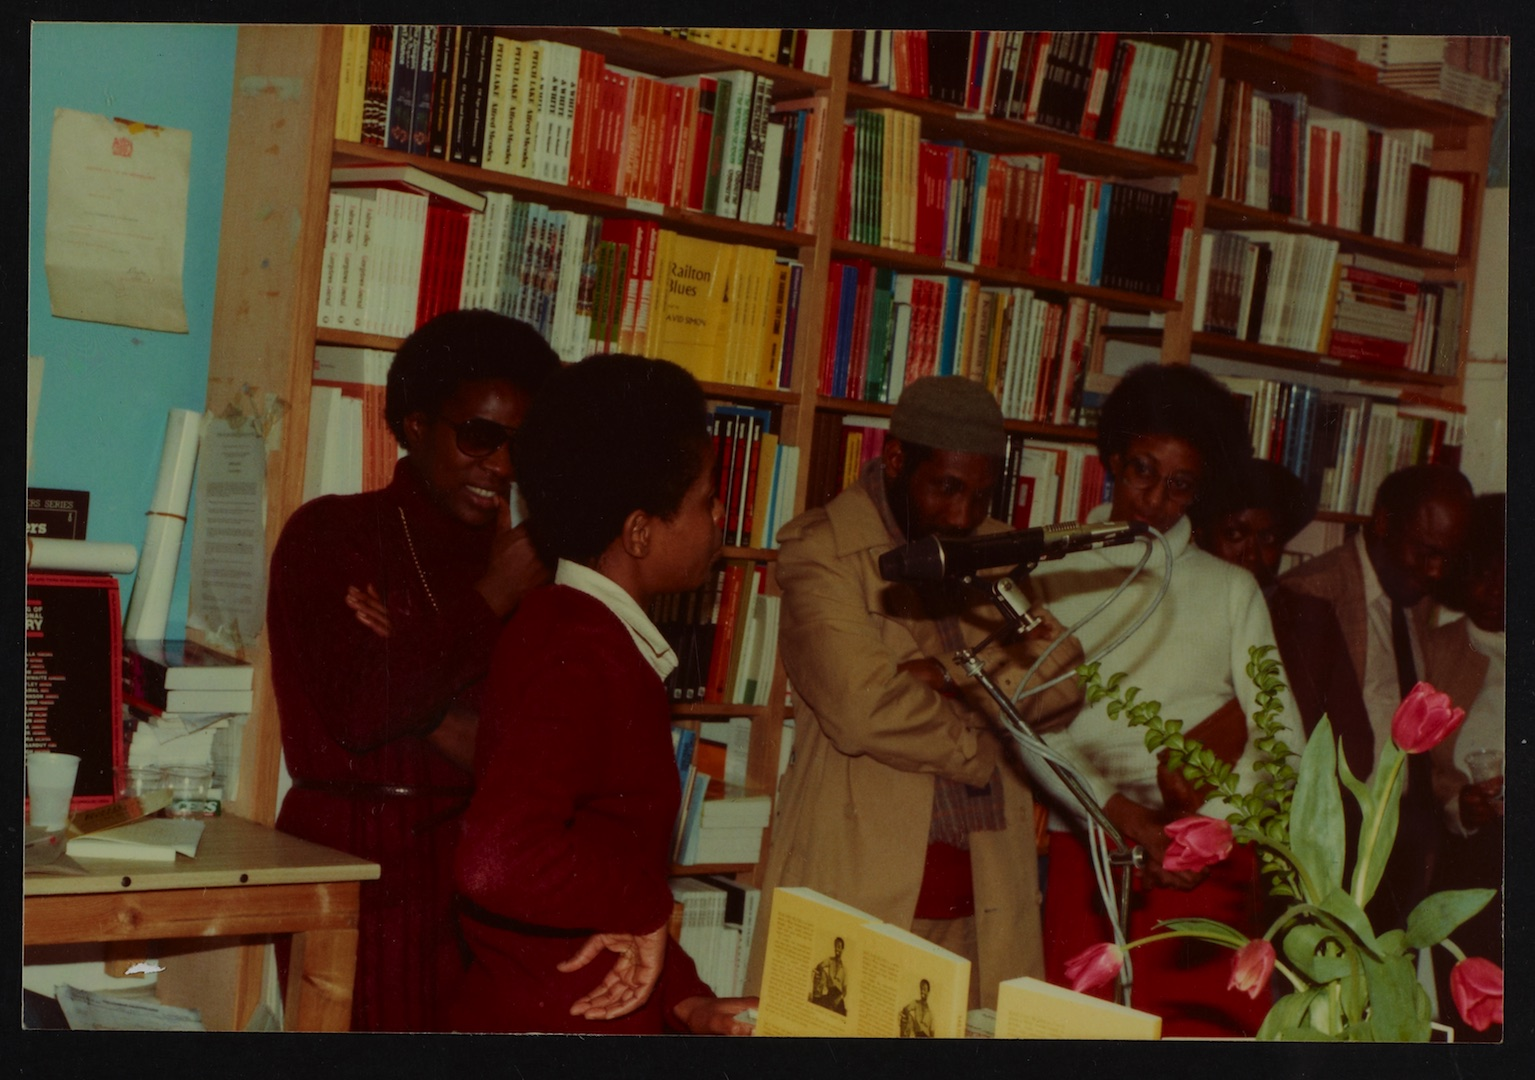 07 L to R - Ann Duncan, Valerie Bloom (performing) _ Imruh Bakari. Huntley Archives at London Metrop